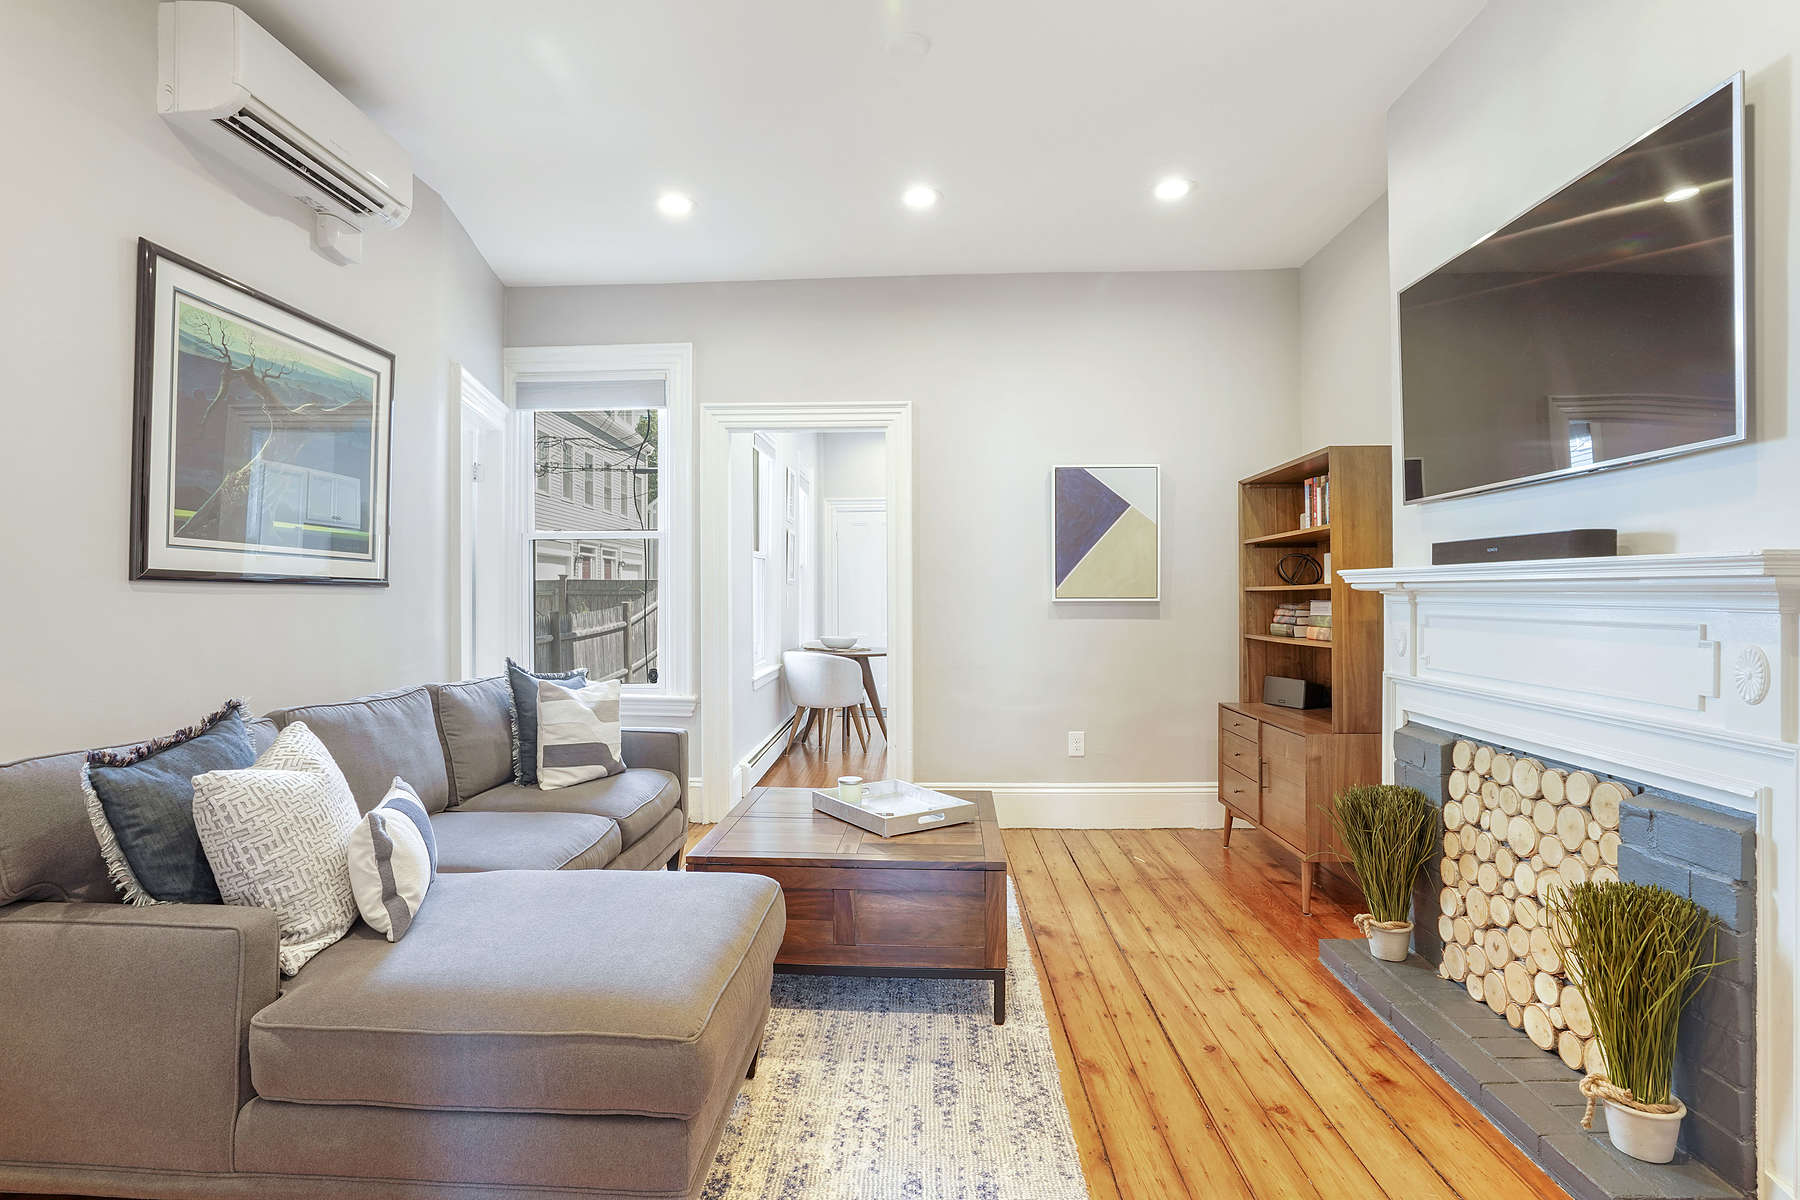 Property 용 매매 에 41 Pearl Street - Unit 1 41 Pearl St 1, Boston, 매사추세츠 02129 미국